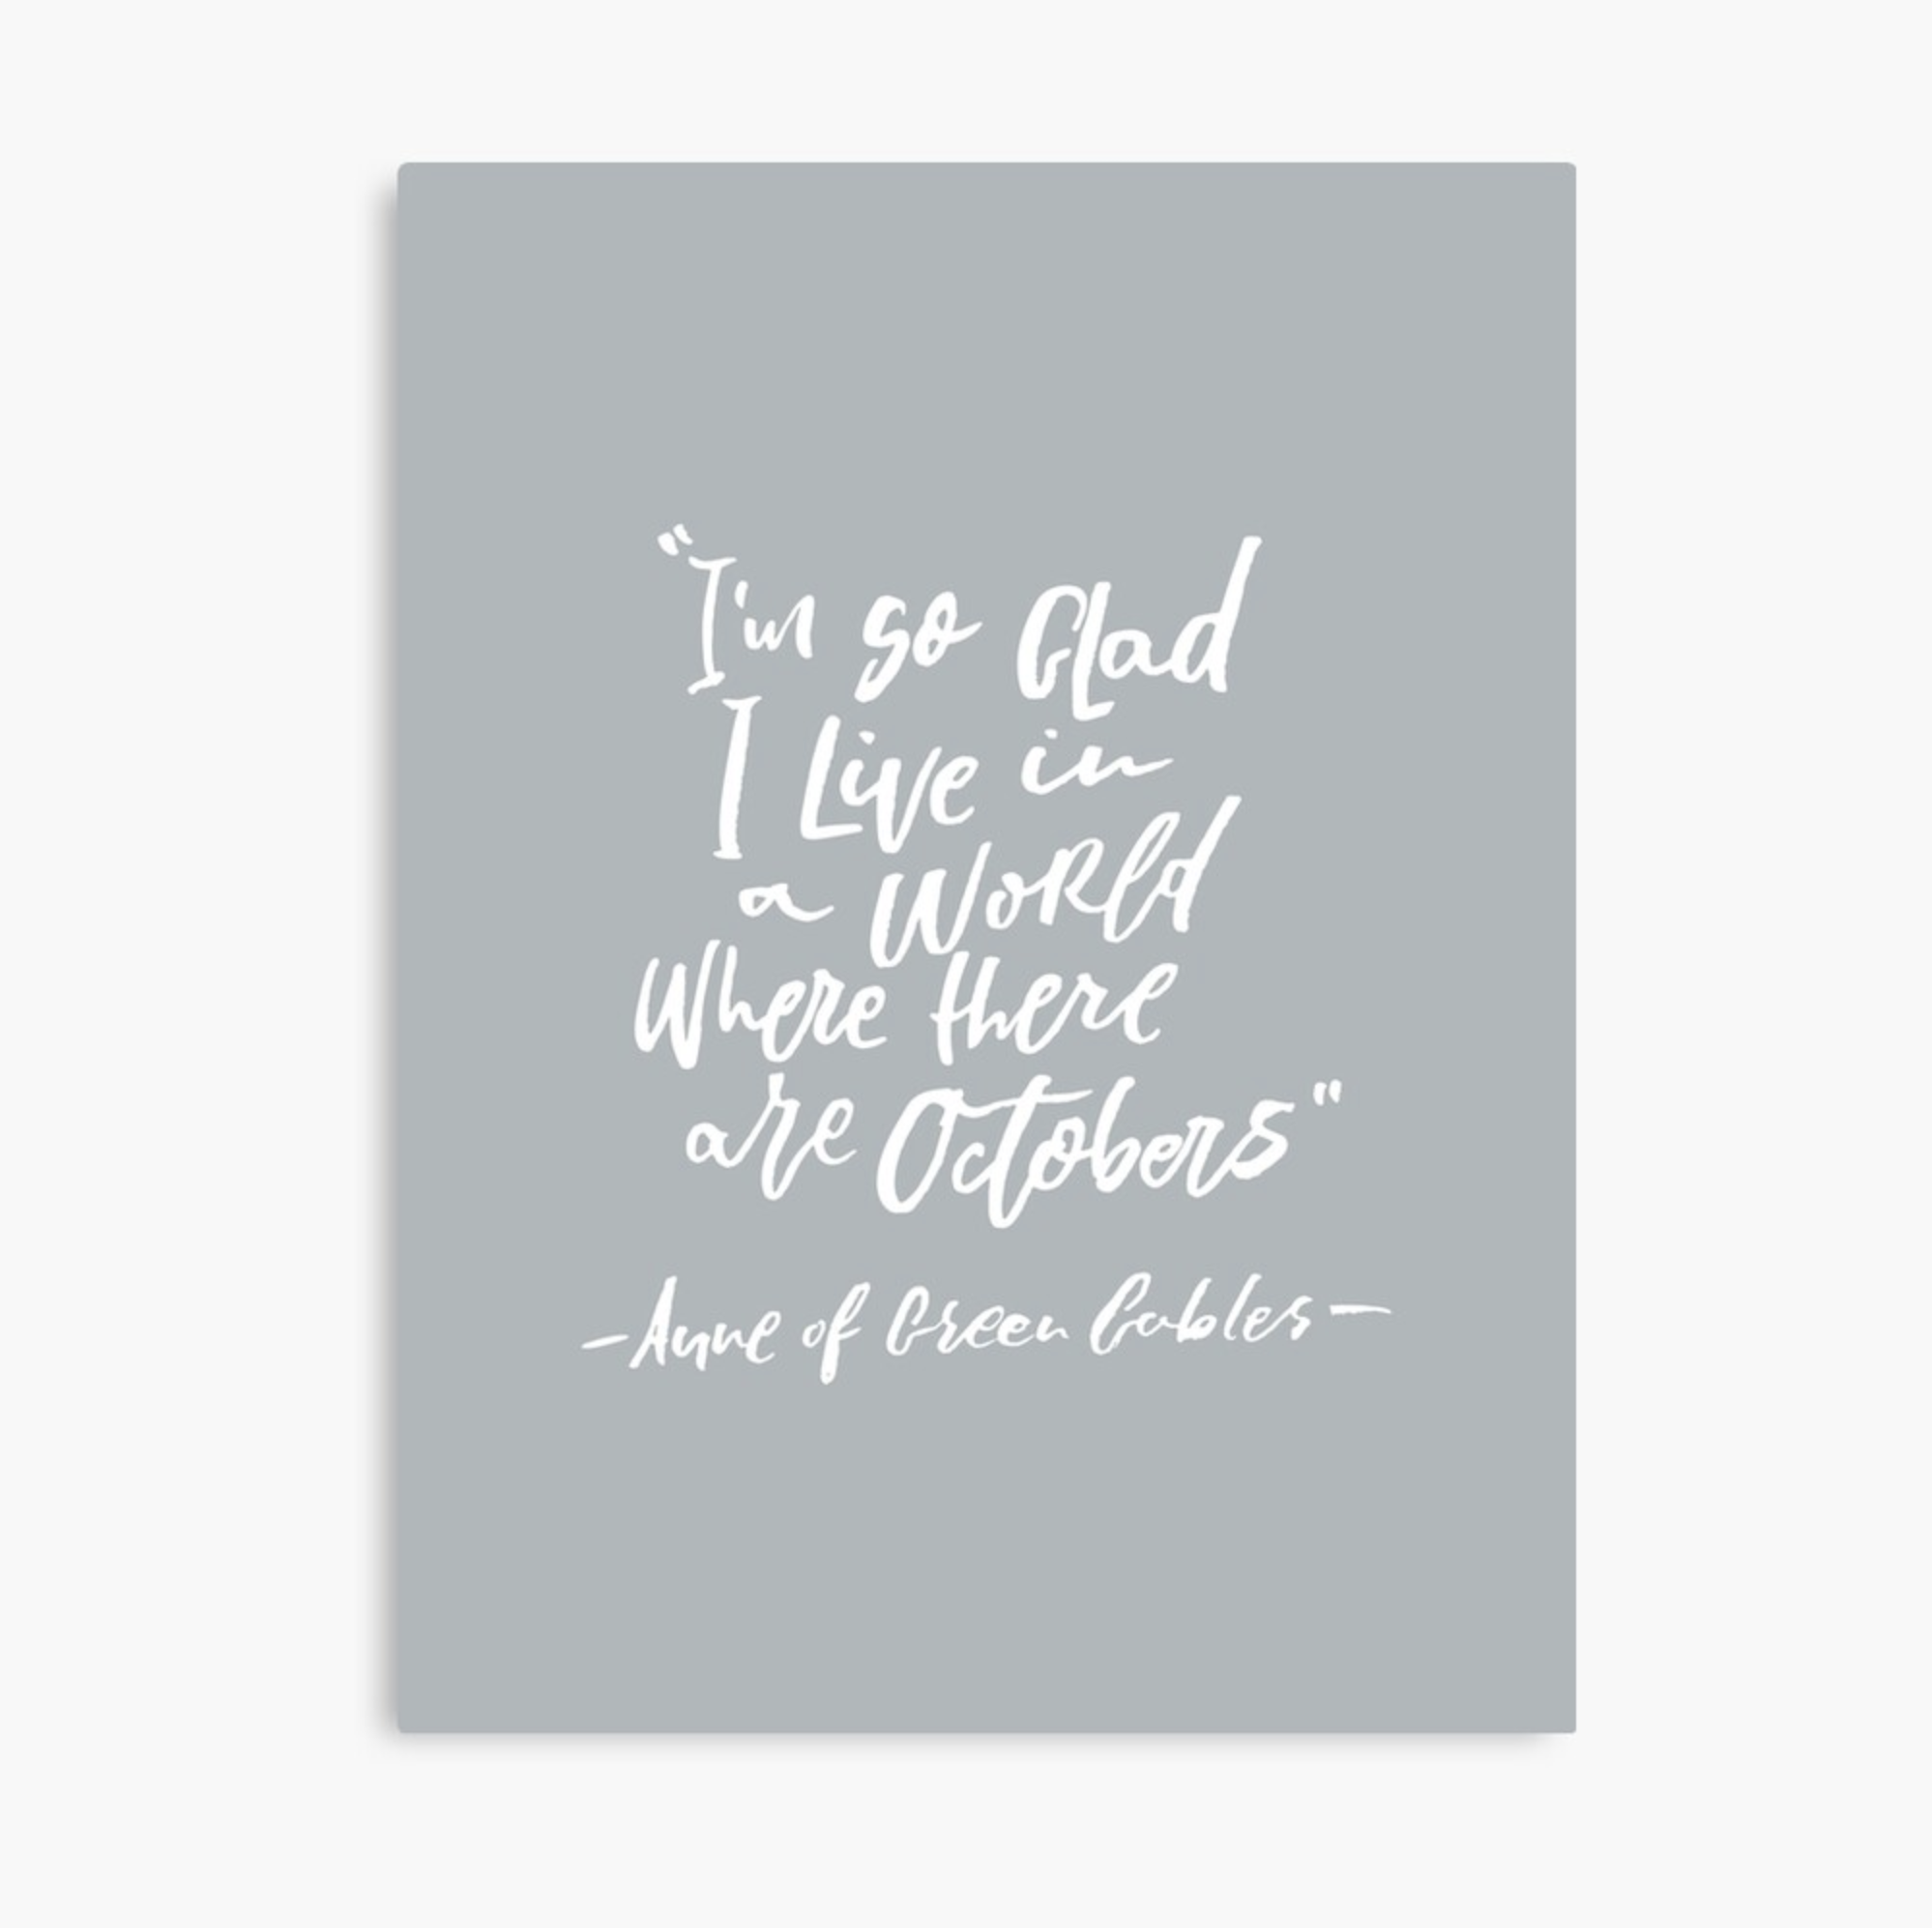 I'm so glad I live in a world where there are Octobers. quote print.